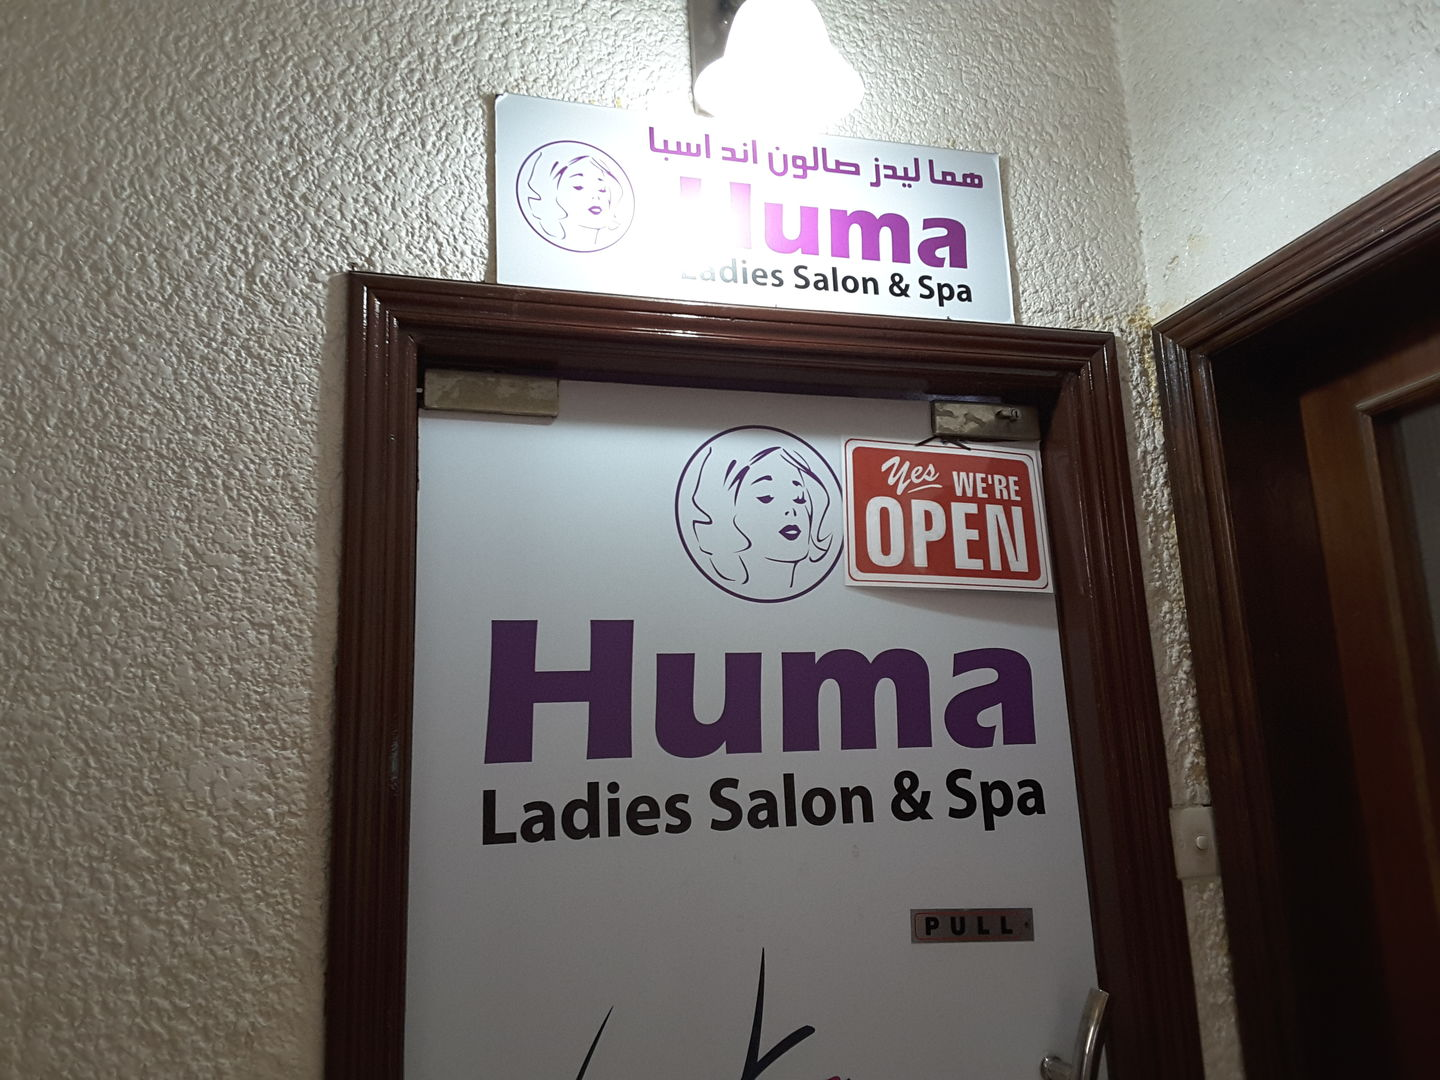 HiDubai-business-huma-ladies-salon-spa-beauty-wellness-health-beauty-salons-al-satwa-dubai-2